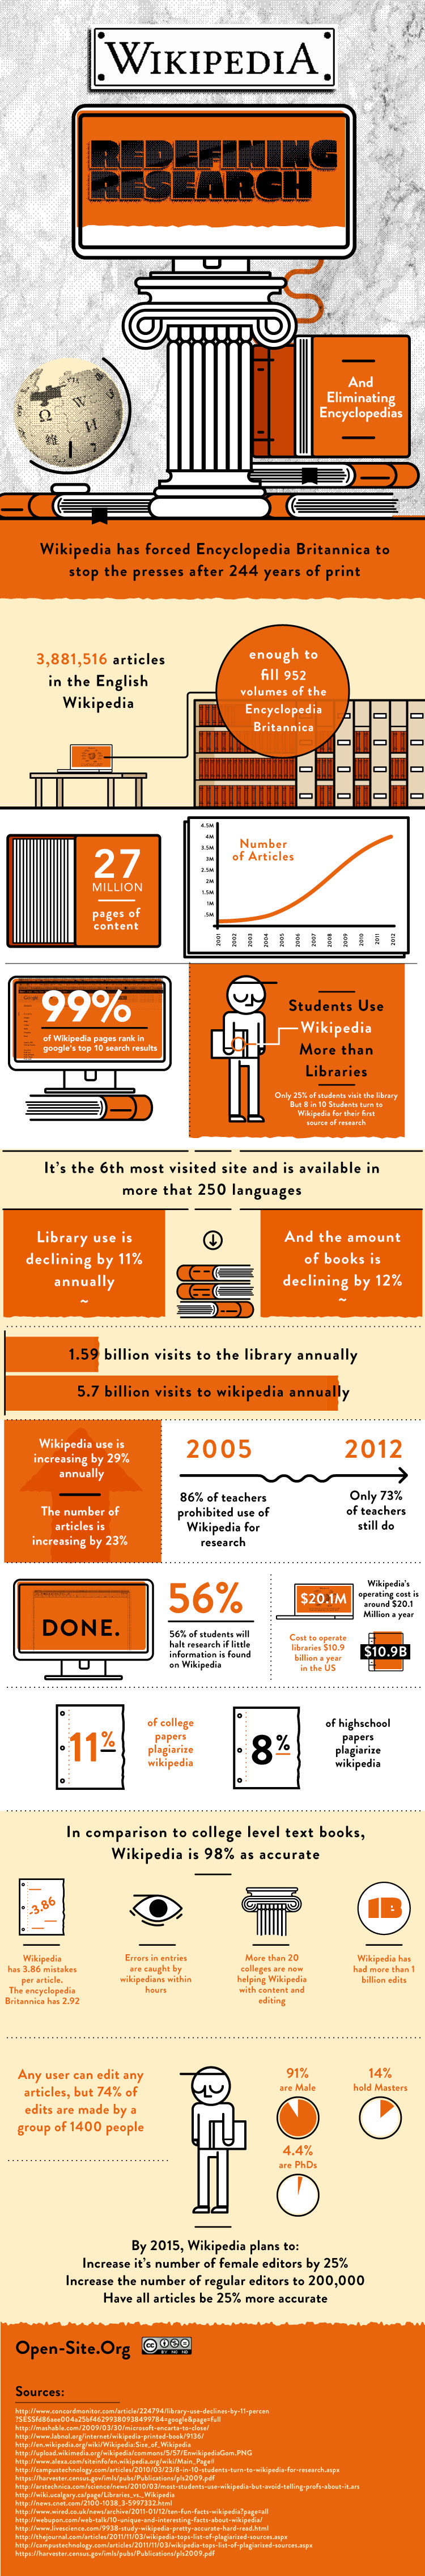 Photo of the Day: Wikipedia infographic